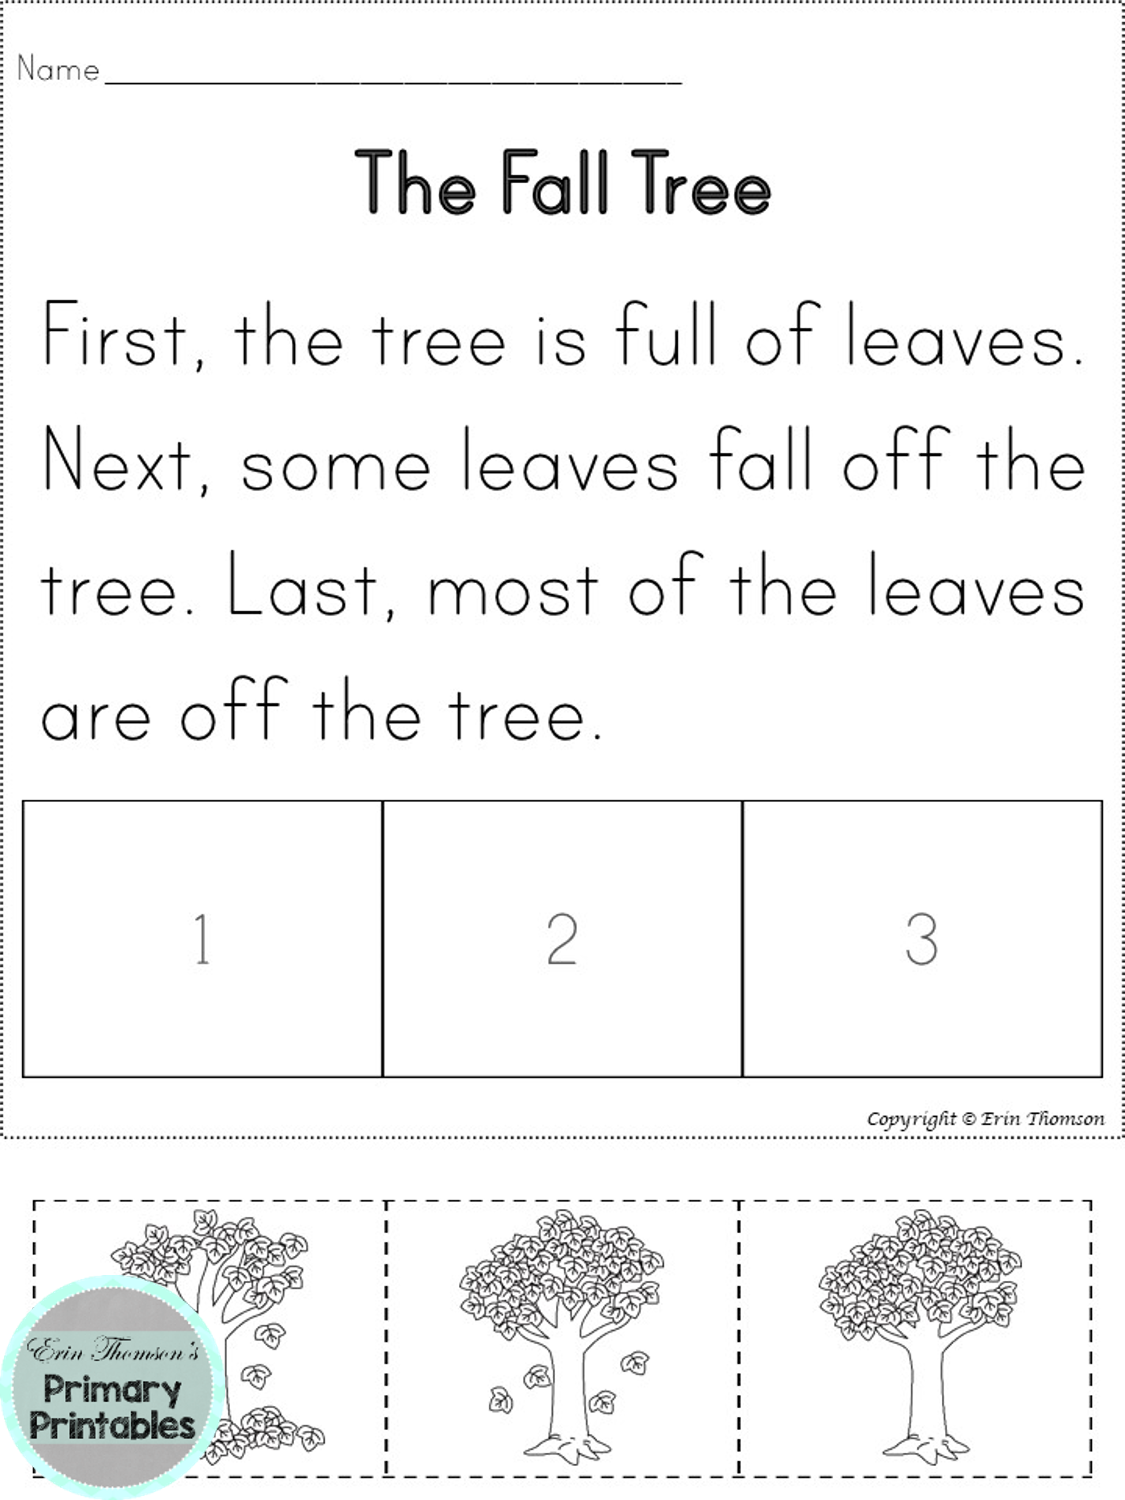 medium resolution of 3 part Sequencing Story ~ The Fall Tree (First